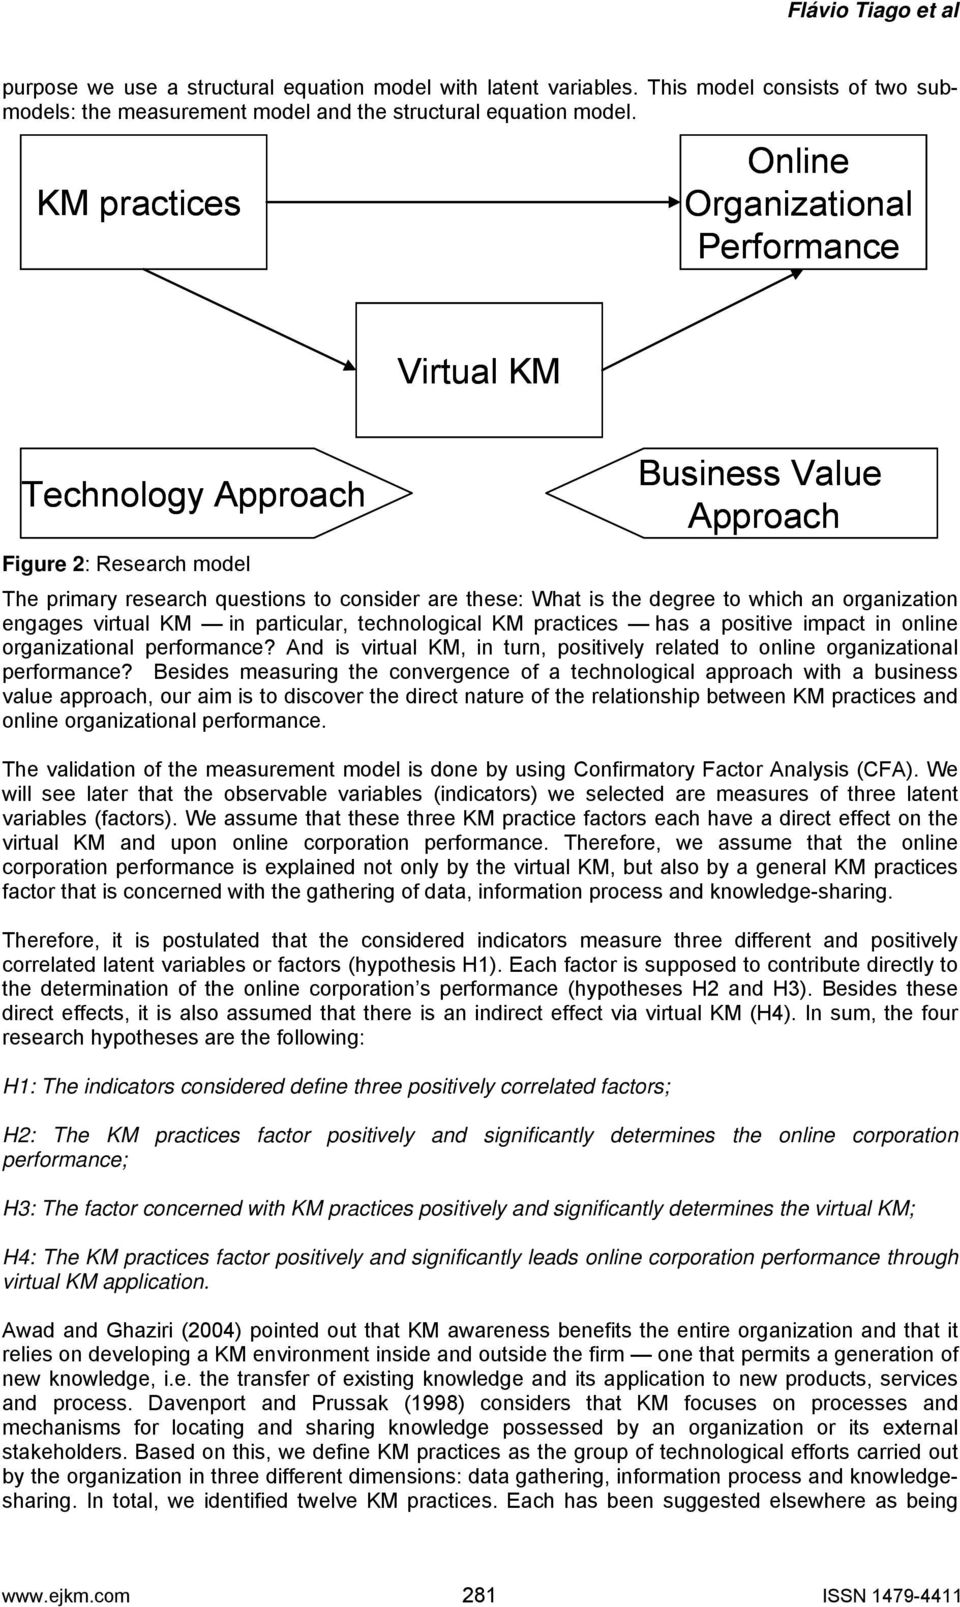 to which an organization engages virtual KM in particular, technological KM practices has a positive impact in online organizational performance?